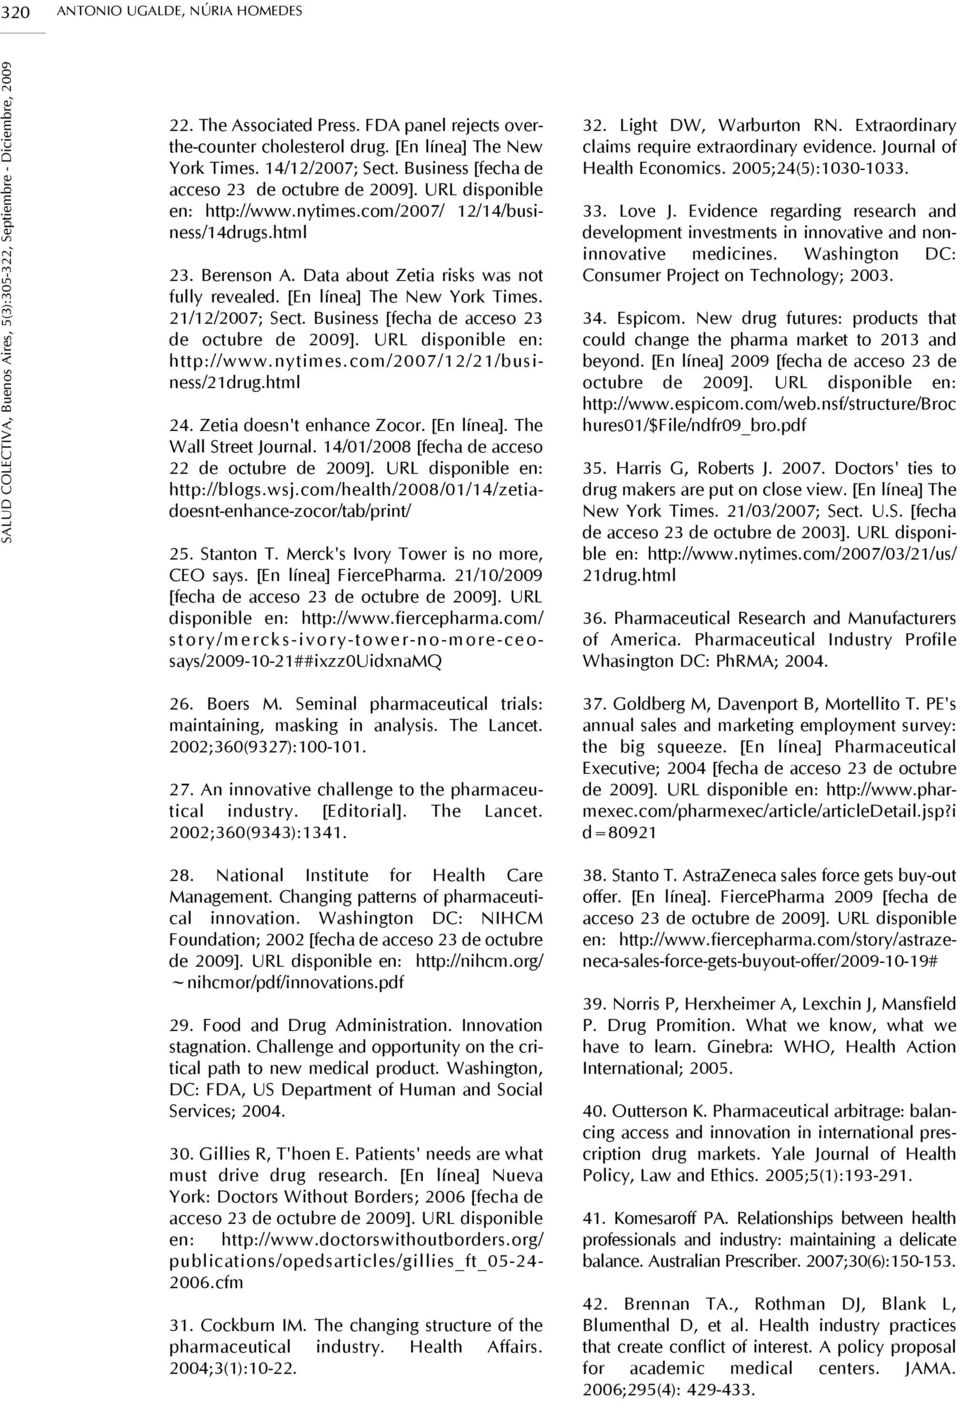 [En línea] The New York Times. 21/12/2007; Sect. Business [fecha de acceso 23 de octubre de 2009]. URL disponible en: http://www.nytimes.com/2007/12/21/business/21drug.html 24.